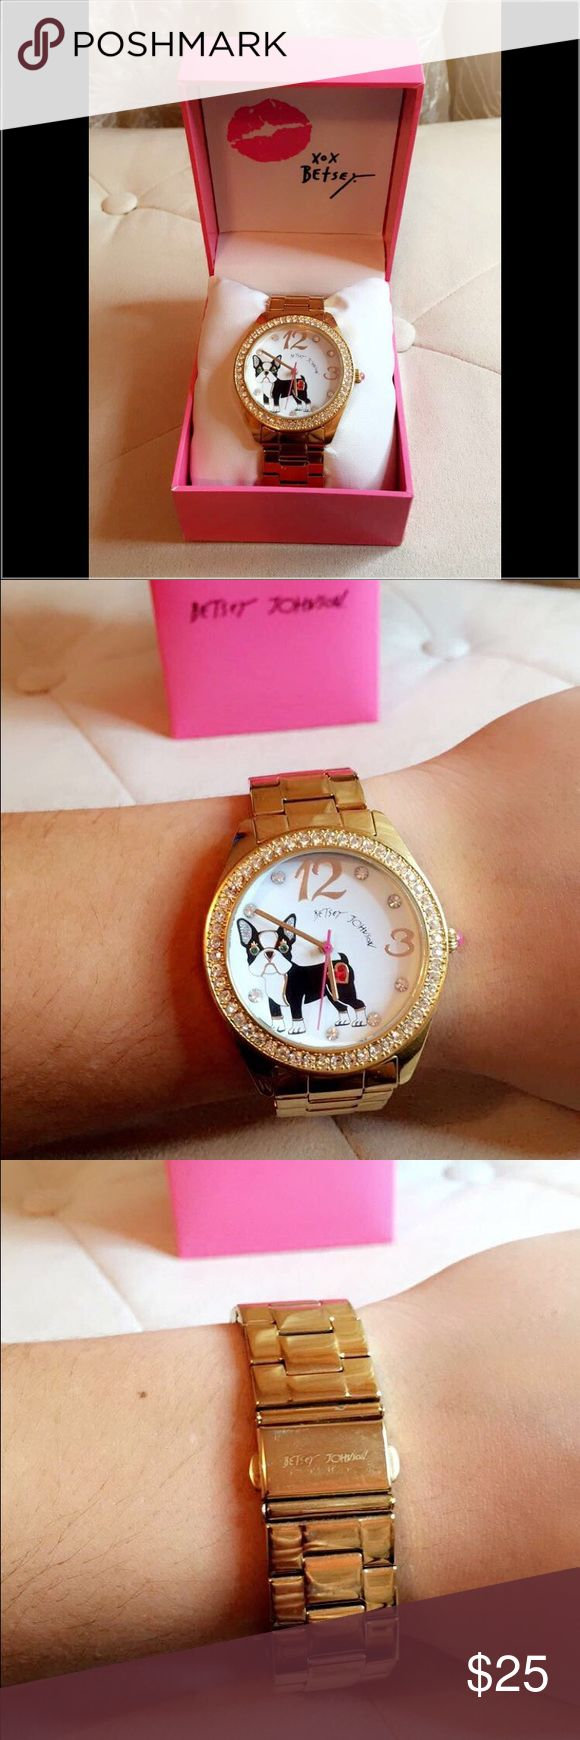 GOLD FRENCH BULLDOG BETSEY JOHNSON WATCH Gold French bulldog Betsey Johnson watch. Great condition. Battery needs replaced Betsey Johnson Accessories Watches